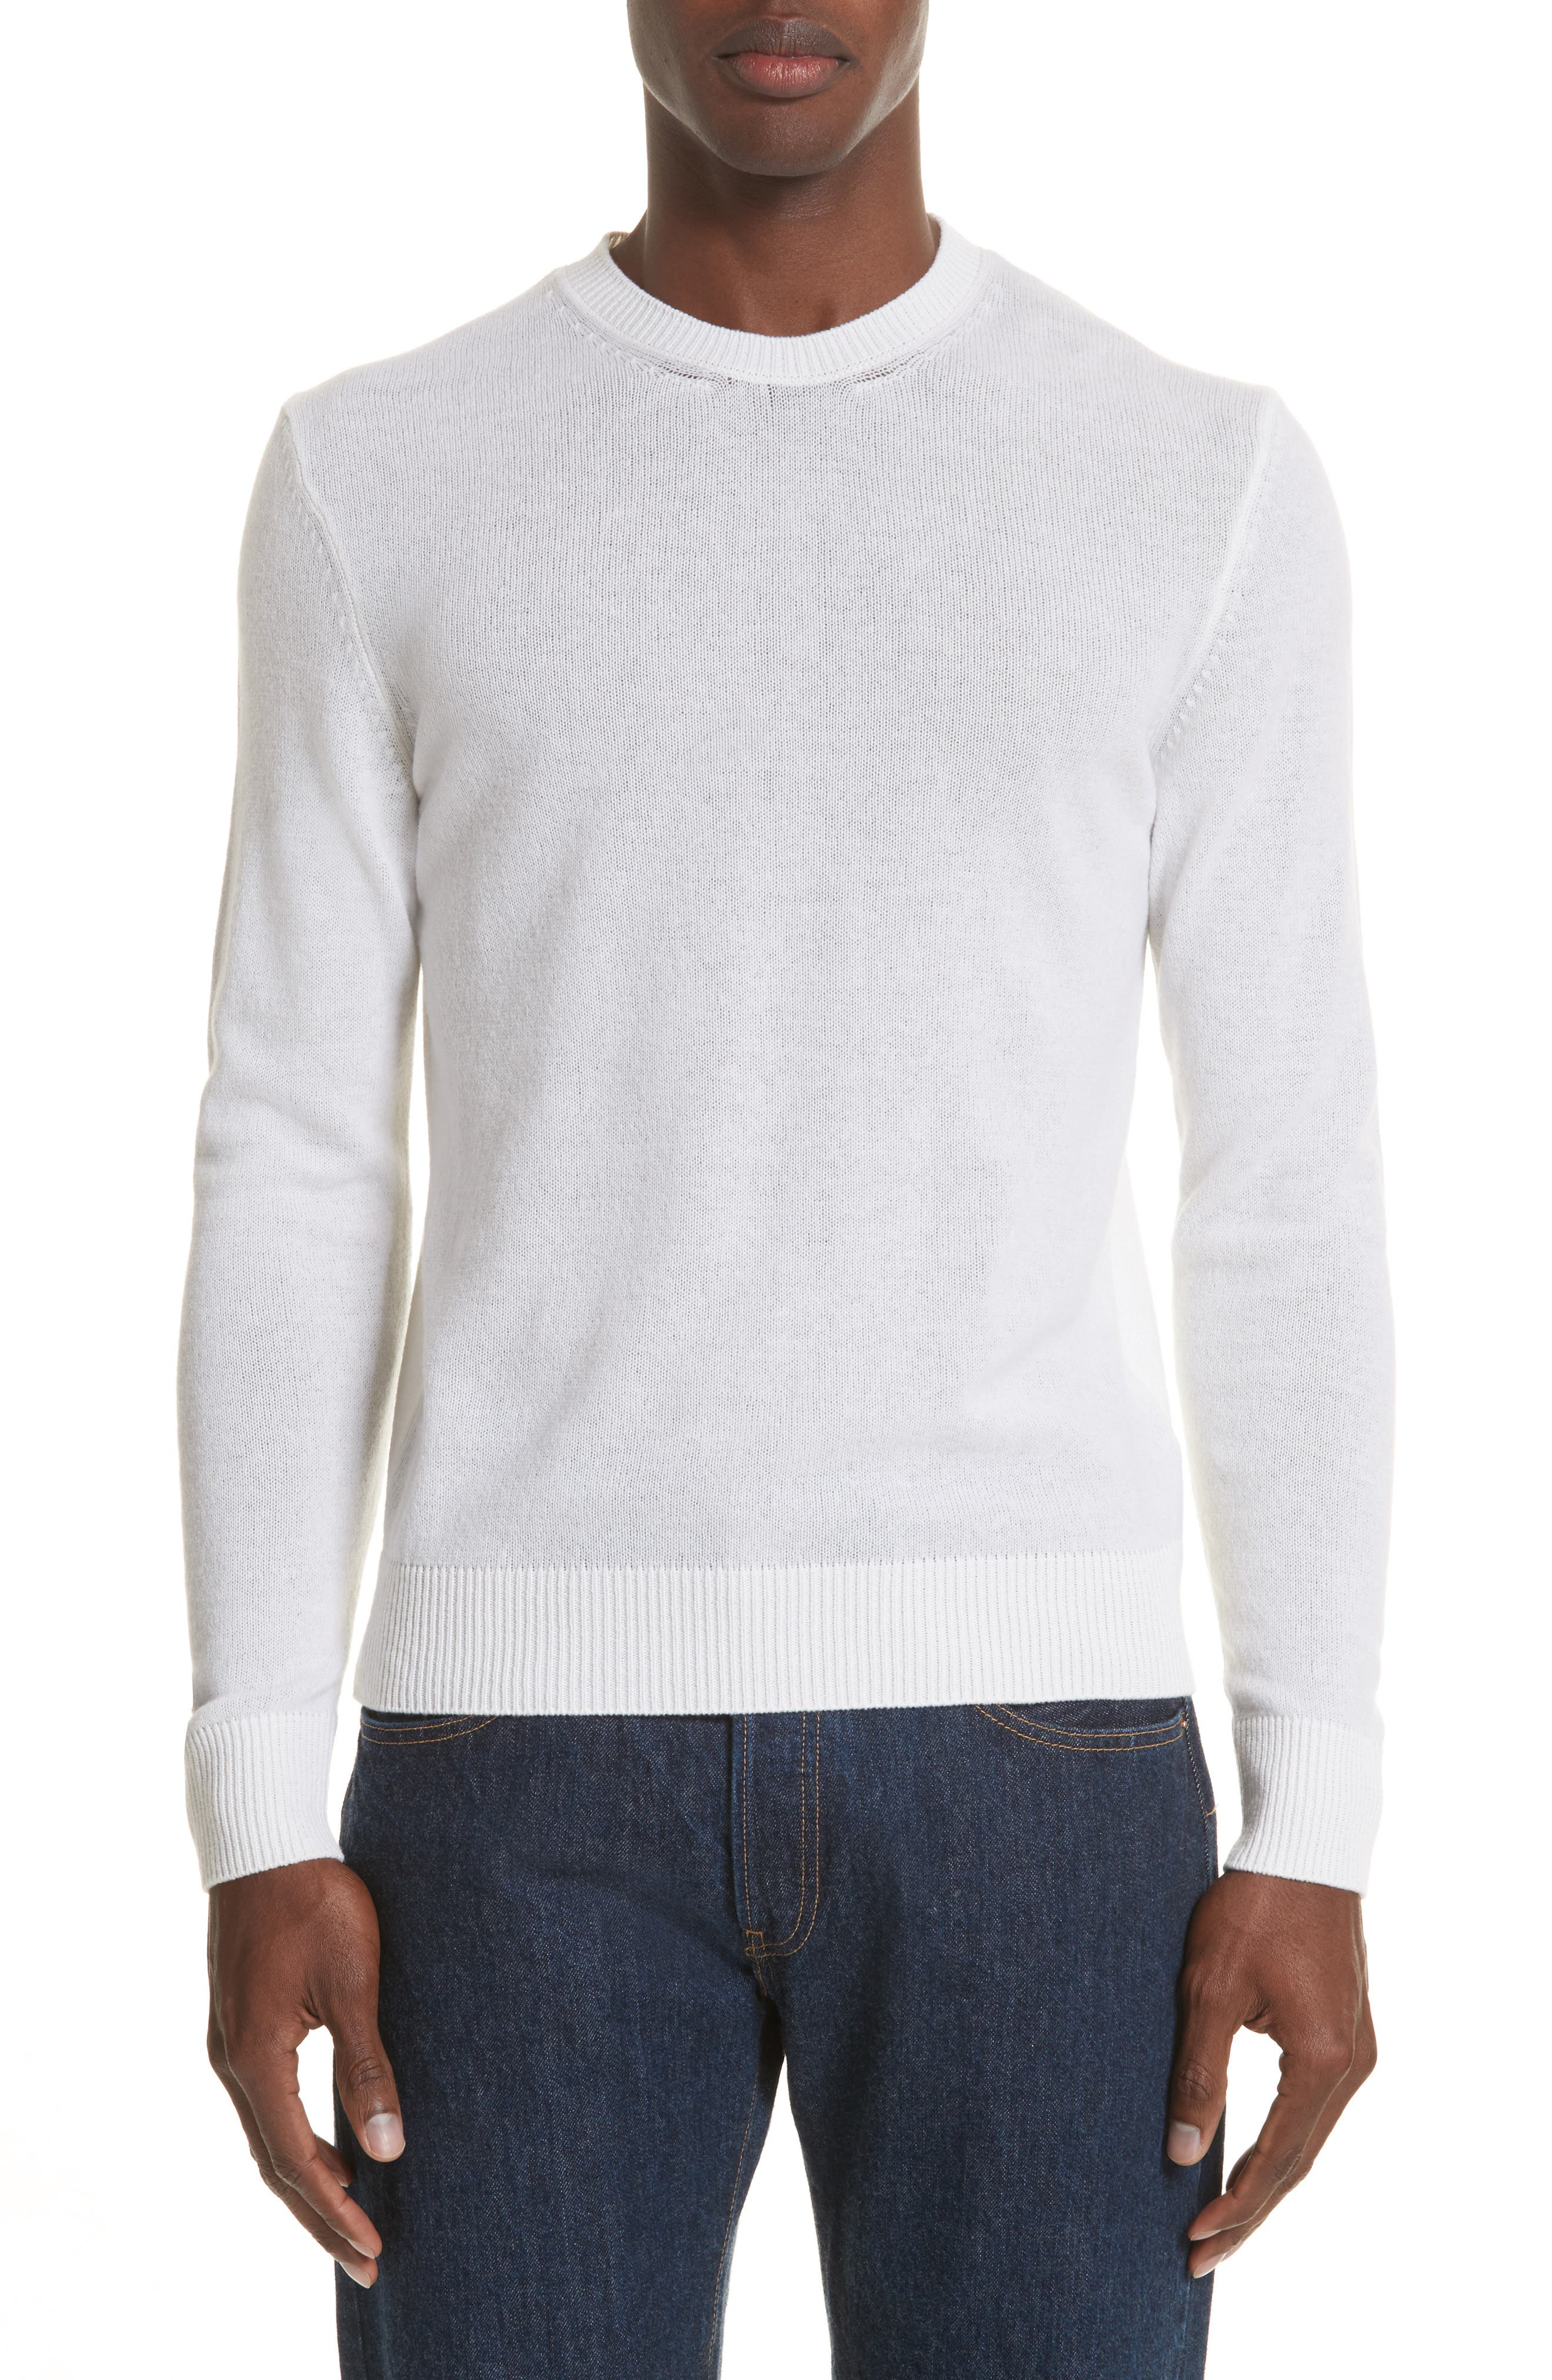 Alternate Image 1 Selected - Moncler Cashmere Crewneck Sweater